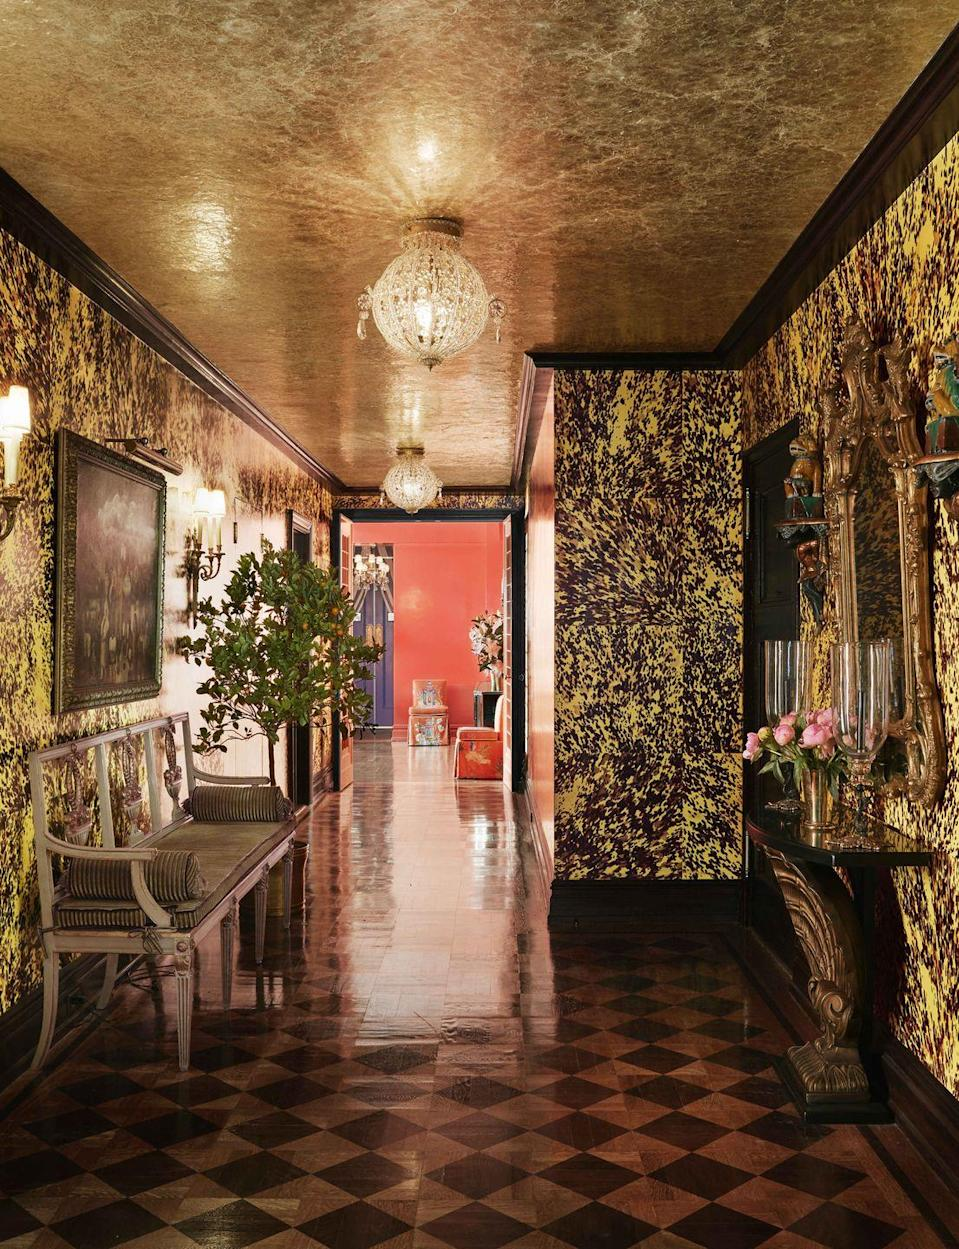 """<p>We've all been reminded this year that life's too short, so why wait to finally lacquer your dining room or wallpaper your home with that print you've been ogling for years? </p><p>Designer Marie Flanigan predicts that """"designers and homeowners won't shy away from interiors lavishly swathed in color,"""" whether it's a rich, saturated red or a funky jewel tone. Plus, with a rise in the highly curated """"grandmillennial"""" and """"cottagecore"""" aesthetics, the deman for floral-patterned wallpaper and murals painted in countryside scenes will likely only increase in the new year. Our current inspiration? <a href=""""https://www.veranda.com/decorating-ideas/house-tours/a34244505/chiqui-woolworth-nyc-apartment-tour/"""" rel=""""nofollow noopener"""" target=""""_blank"""" data-ylk=""""slk:This stunning, Upper East Side entry"""" class=""""link rapid-noclick-resp"""">This stunning, Upper East Side entry</a> designed by Chiqui Woolworth. </p><p>""""Home has become our 'everything' space right now,"""" says Manhattan-based designer <a href=""""https://www.philipgorrivan.com/"""" rel=""""nofollow noopener"""" target=""""_blank"""" data-ylk=""""slk:Phillip Gorrivan"""" class=""""link rapid-noclick-resp"""">Phillip Gorrivan</a>. """"I see more interiors with authenticity and narrative as well as spaces with color, pattern and playfulness as the next trend. Color and pattern are one way to tell a unique story, and also lift up our moods and spirits. I think designers and homeowners alike will seek ways to make their interiors more unique. Interiors will need to speak to the inhabitants and tell a story.""""</p>"""